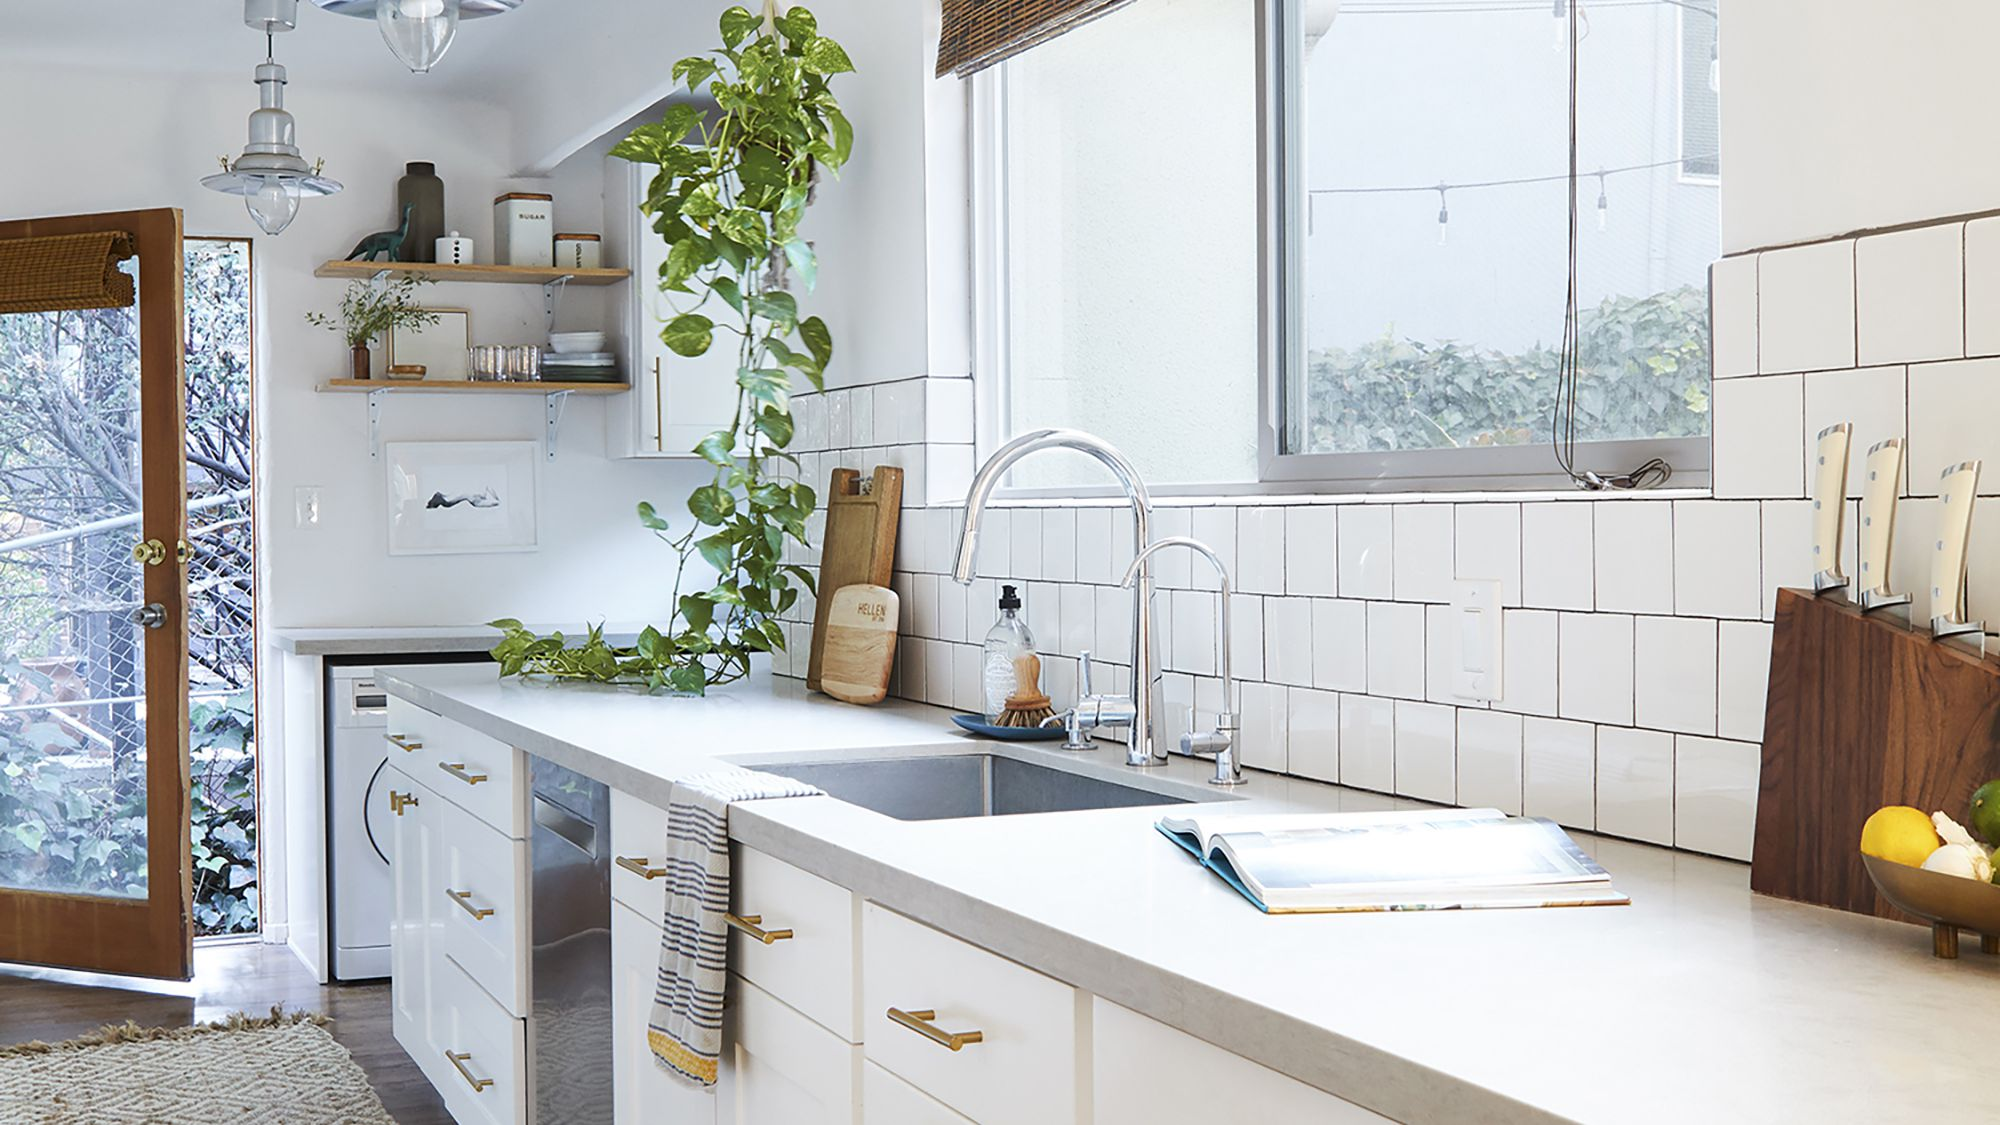 12 Best Square Subway Tile Ideas,Colors That Go Well With Red